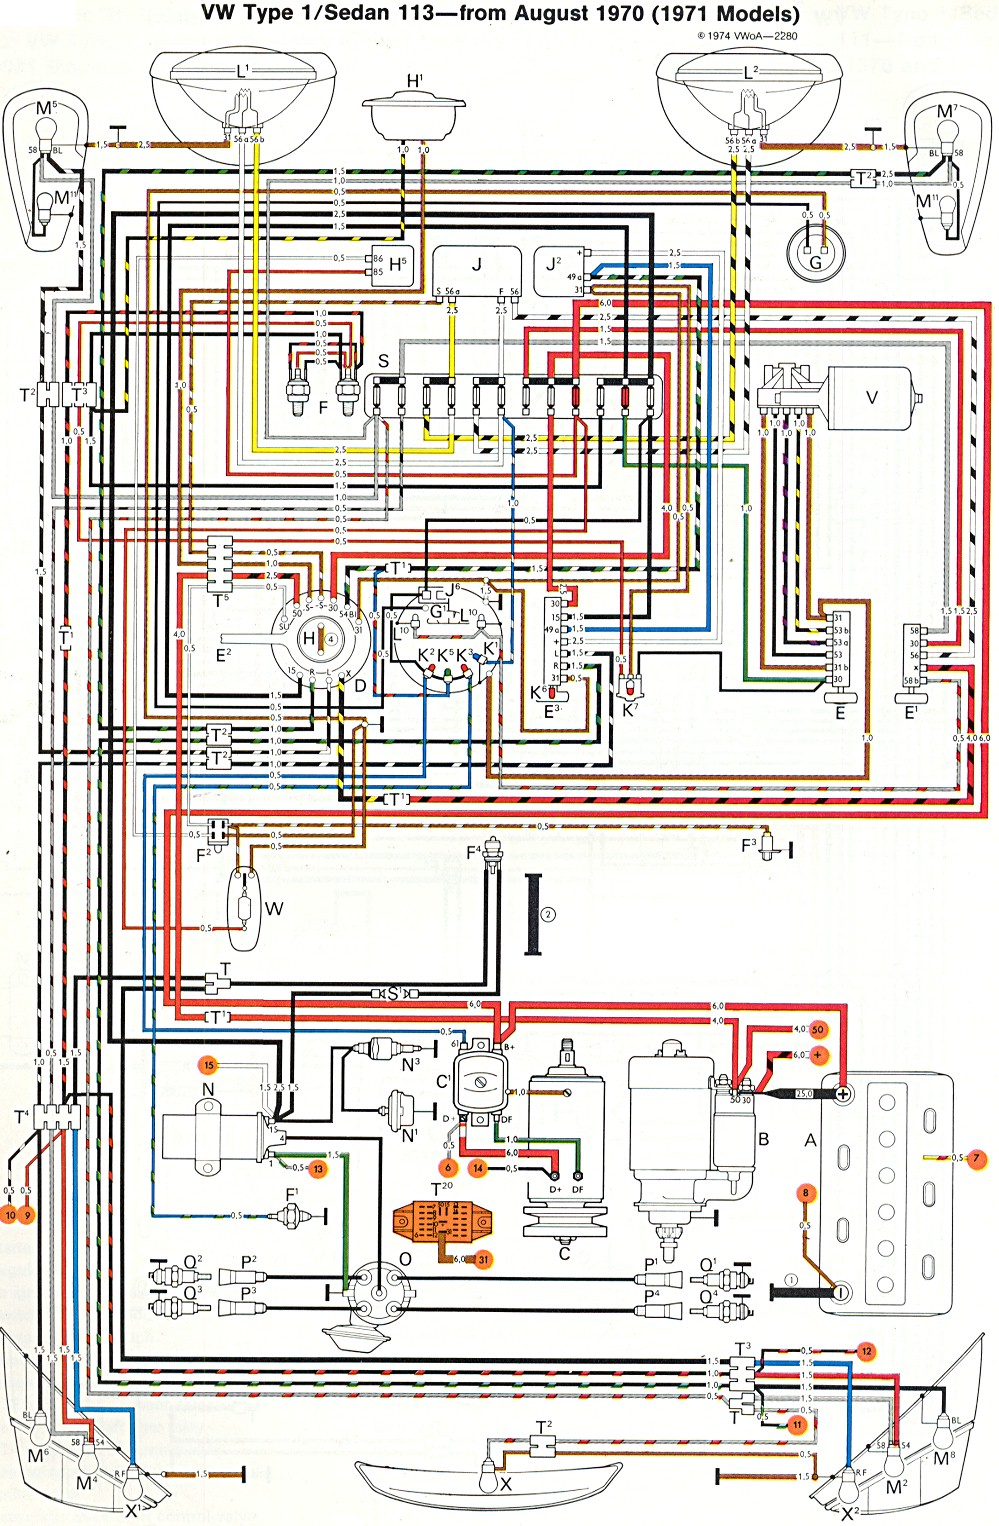 bug_super_71 1971 super beetle wiring diagram thegoldenbug com 1973 vw beetle wiring diagram at cos-gaming.co